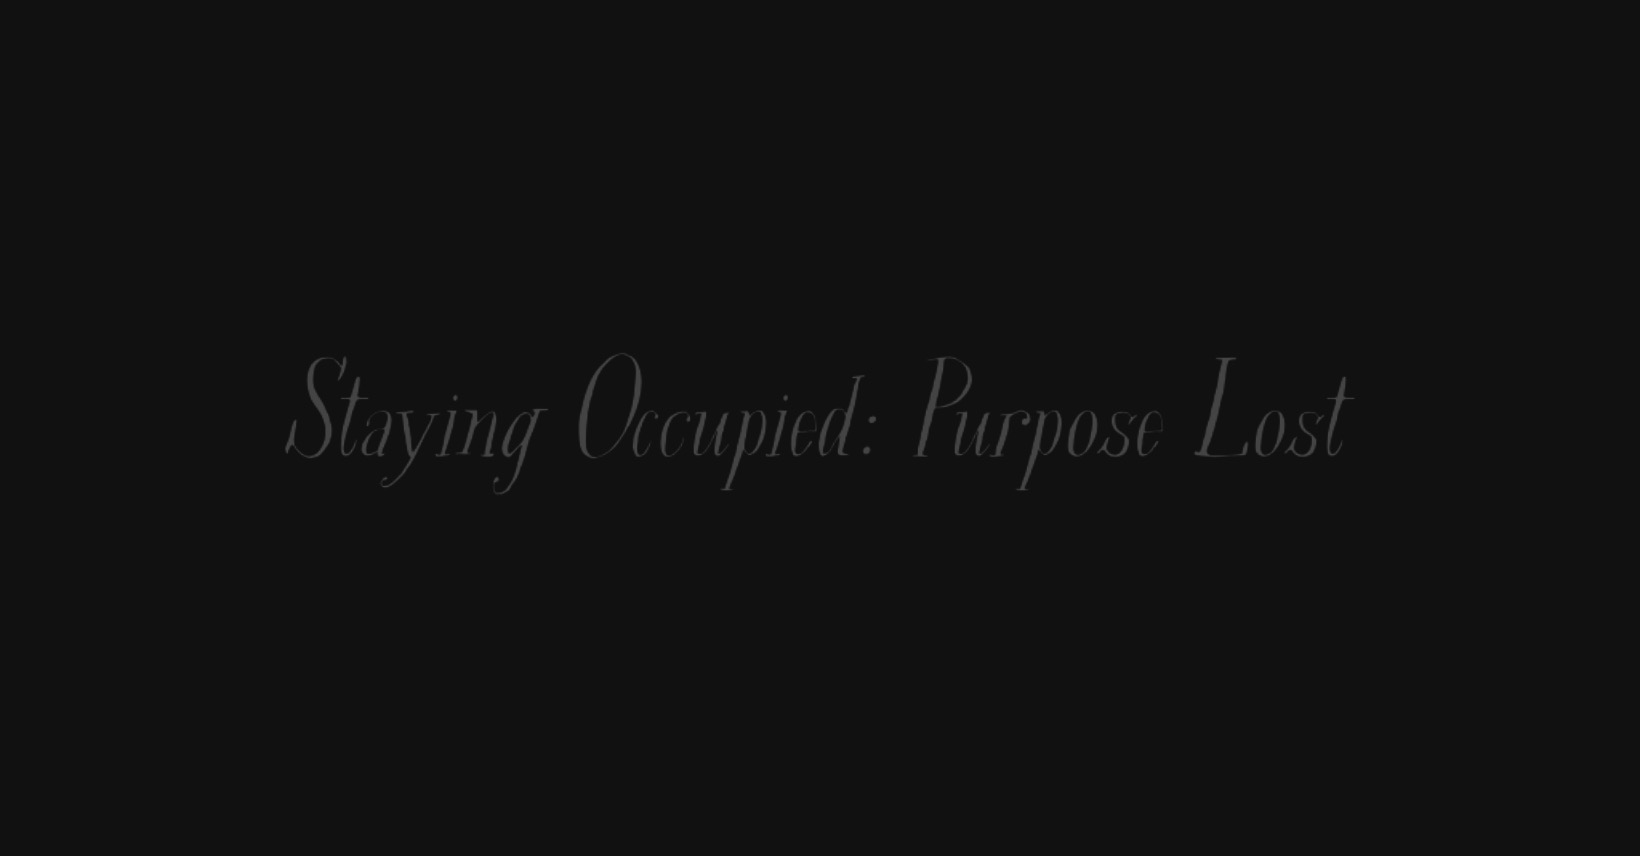 Staying Occupied: Purpose Lost | www.sproutingbalance.com | #stayhome #socialdistancing #bepositive